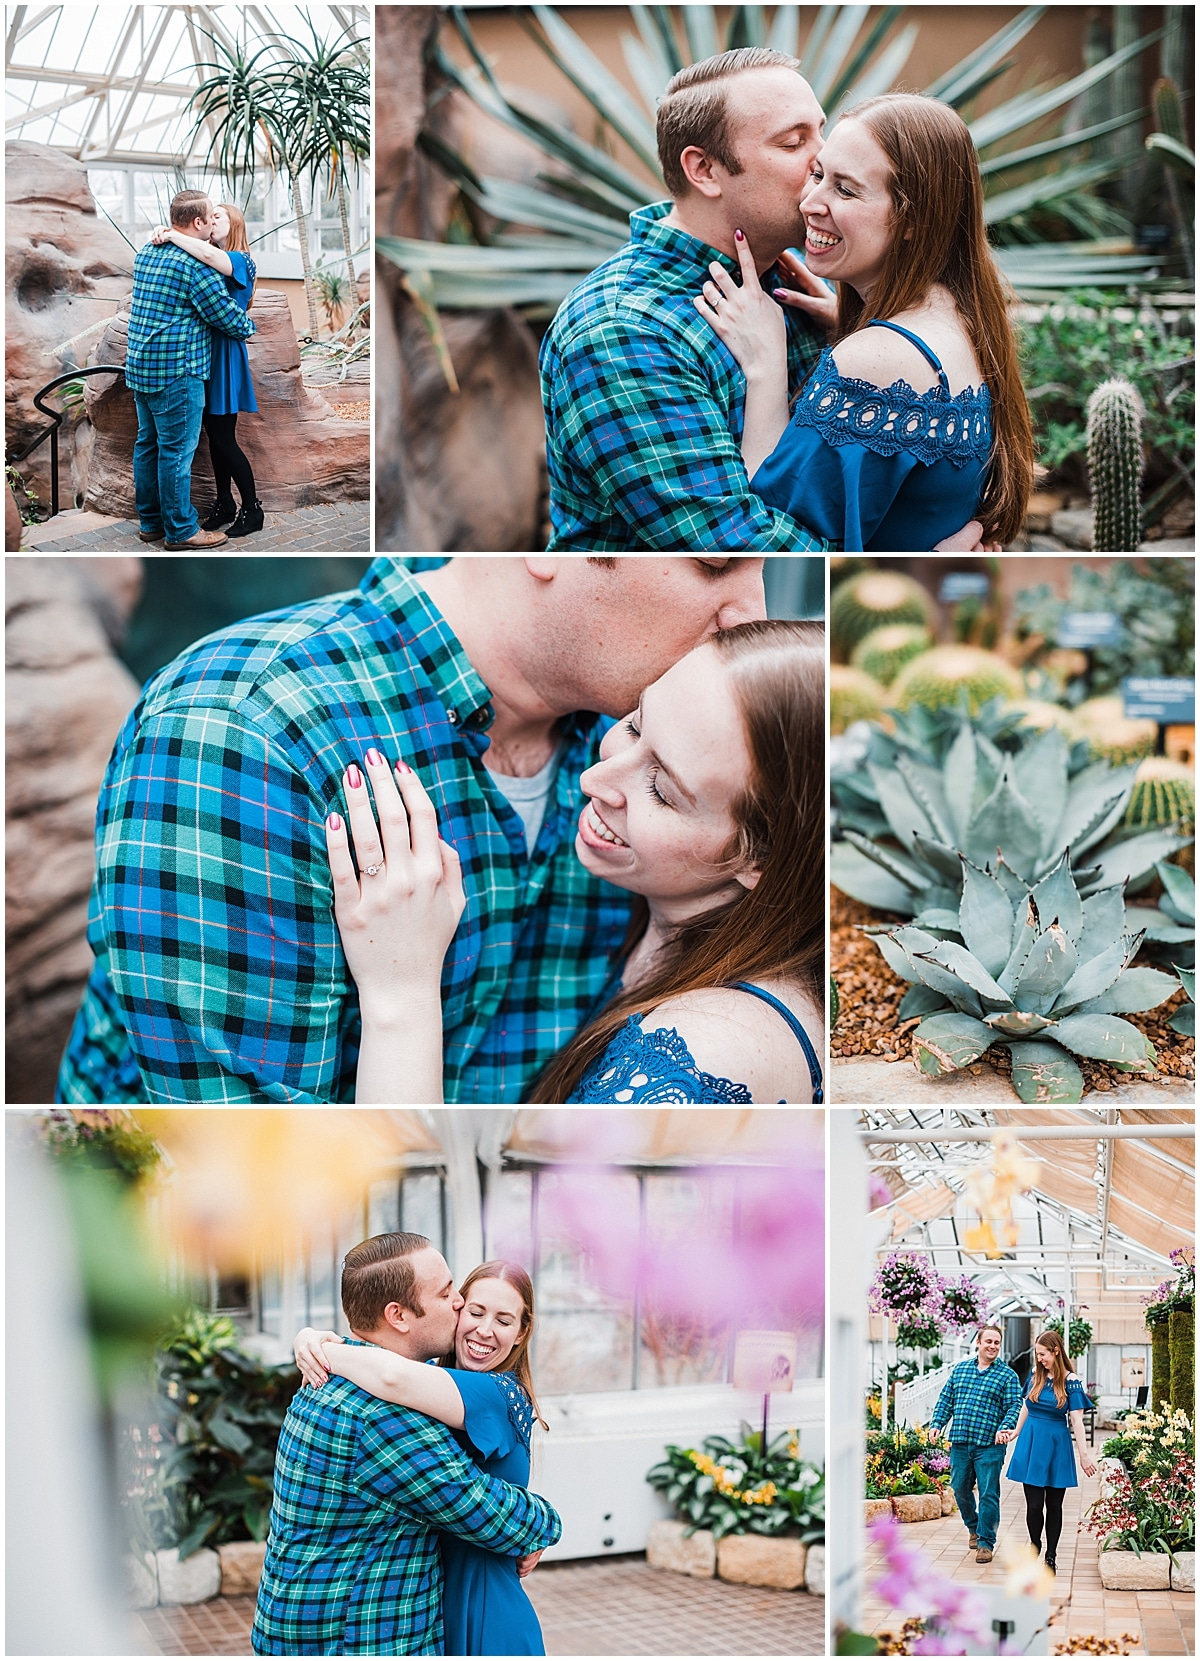 Franklin park conservatory photo session